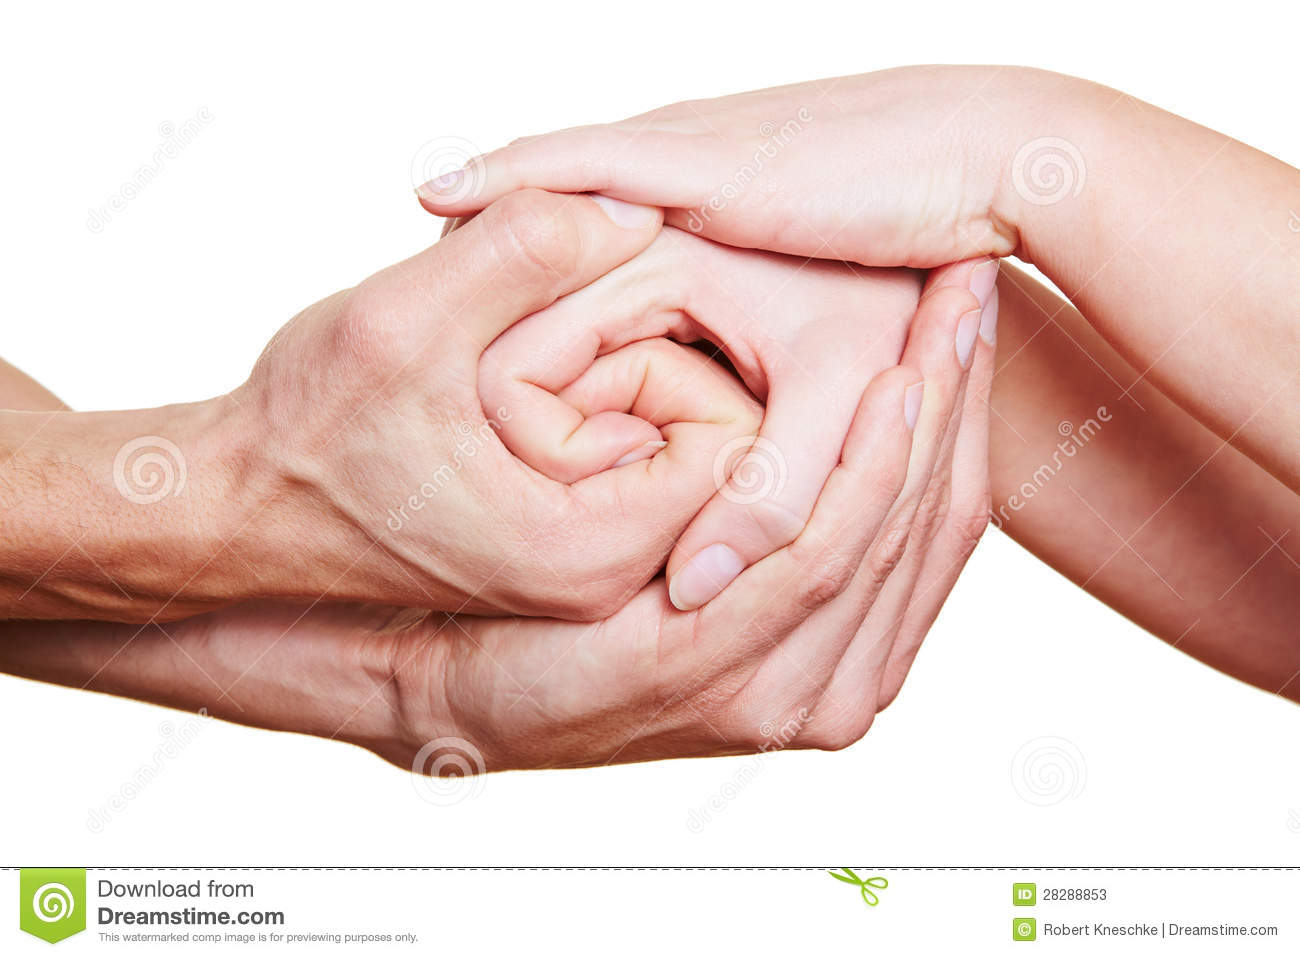 Many hands holding on to each other